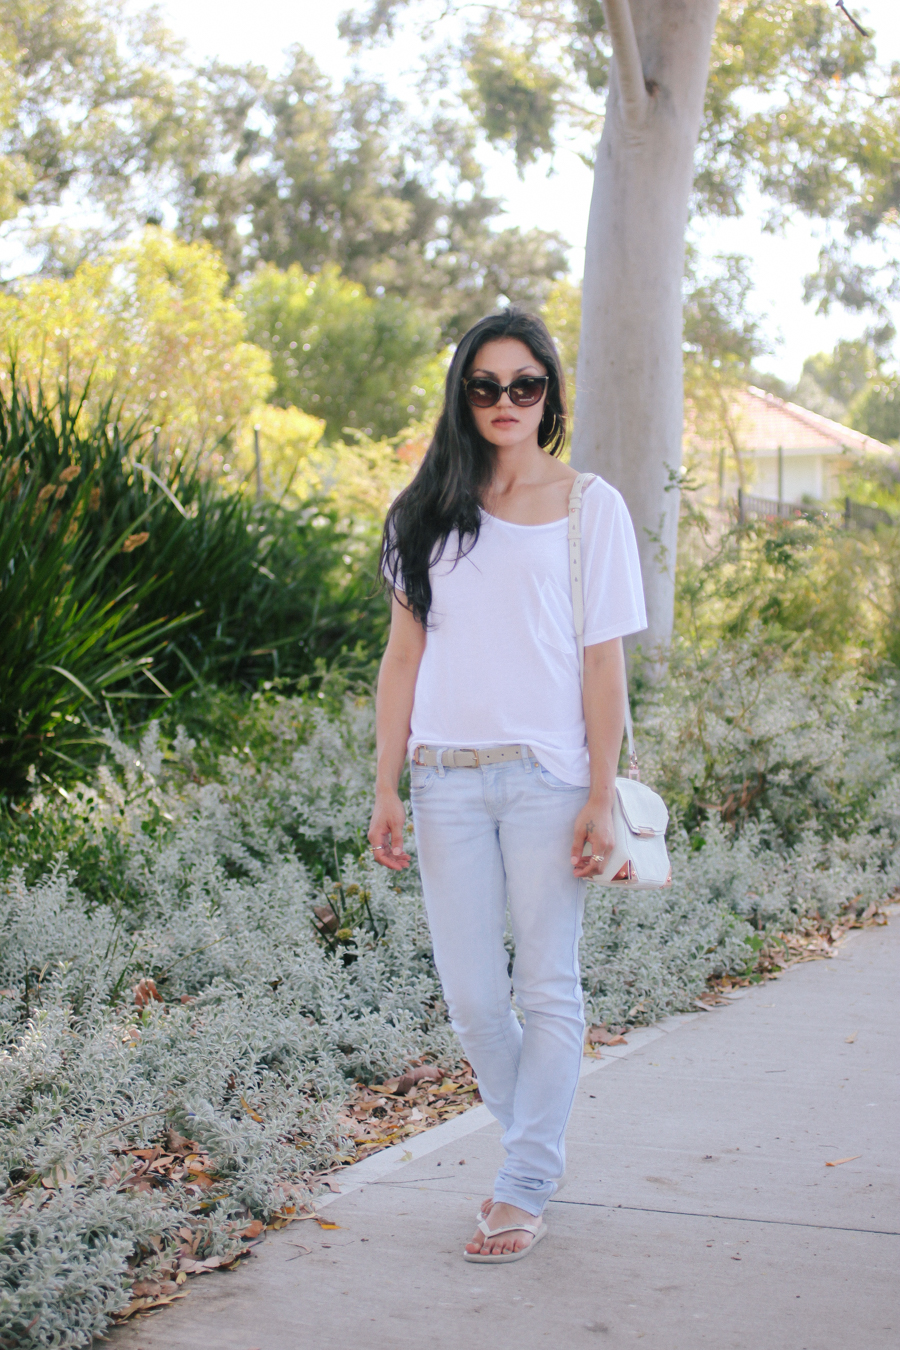 Mink Pink tee with jeans & Alexander Wang Marion bag.